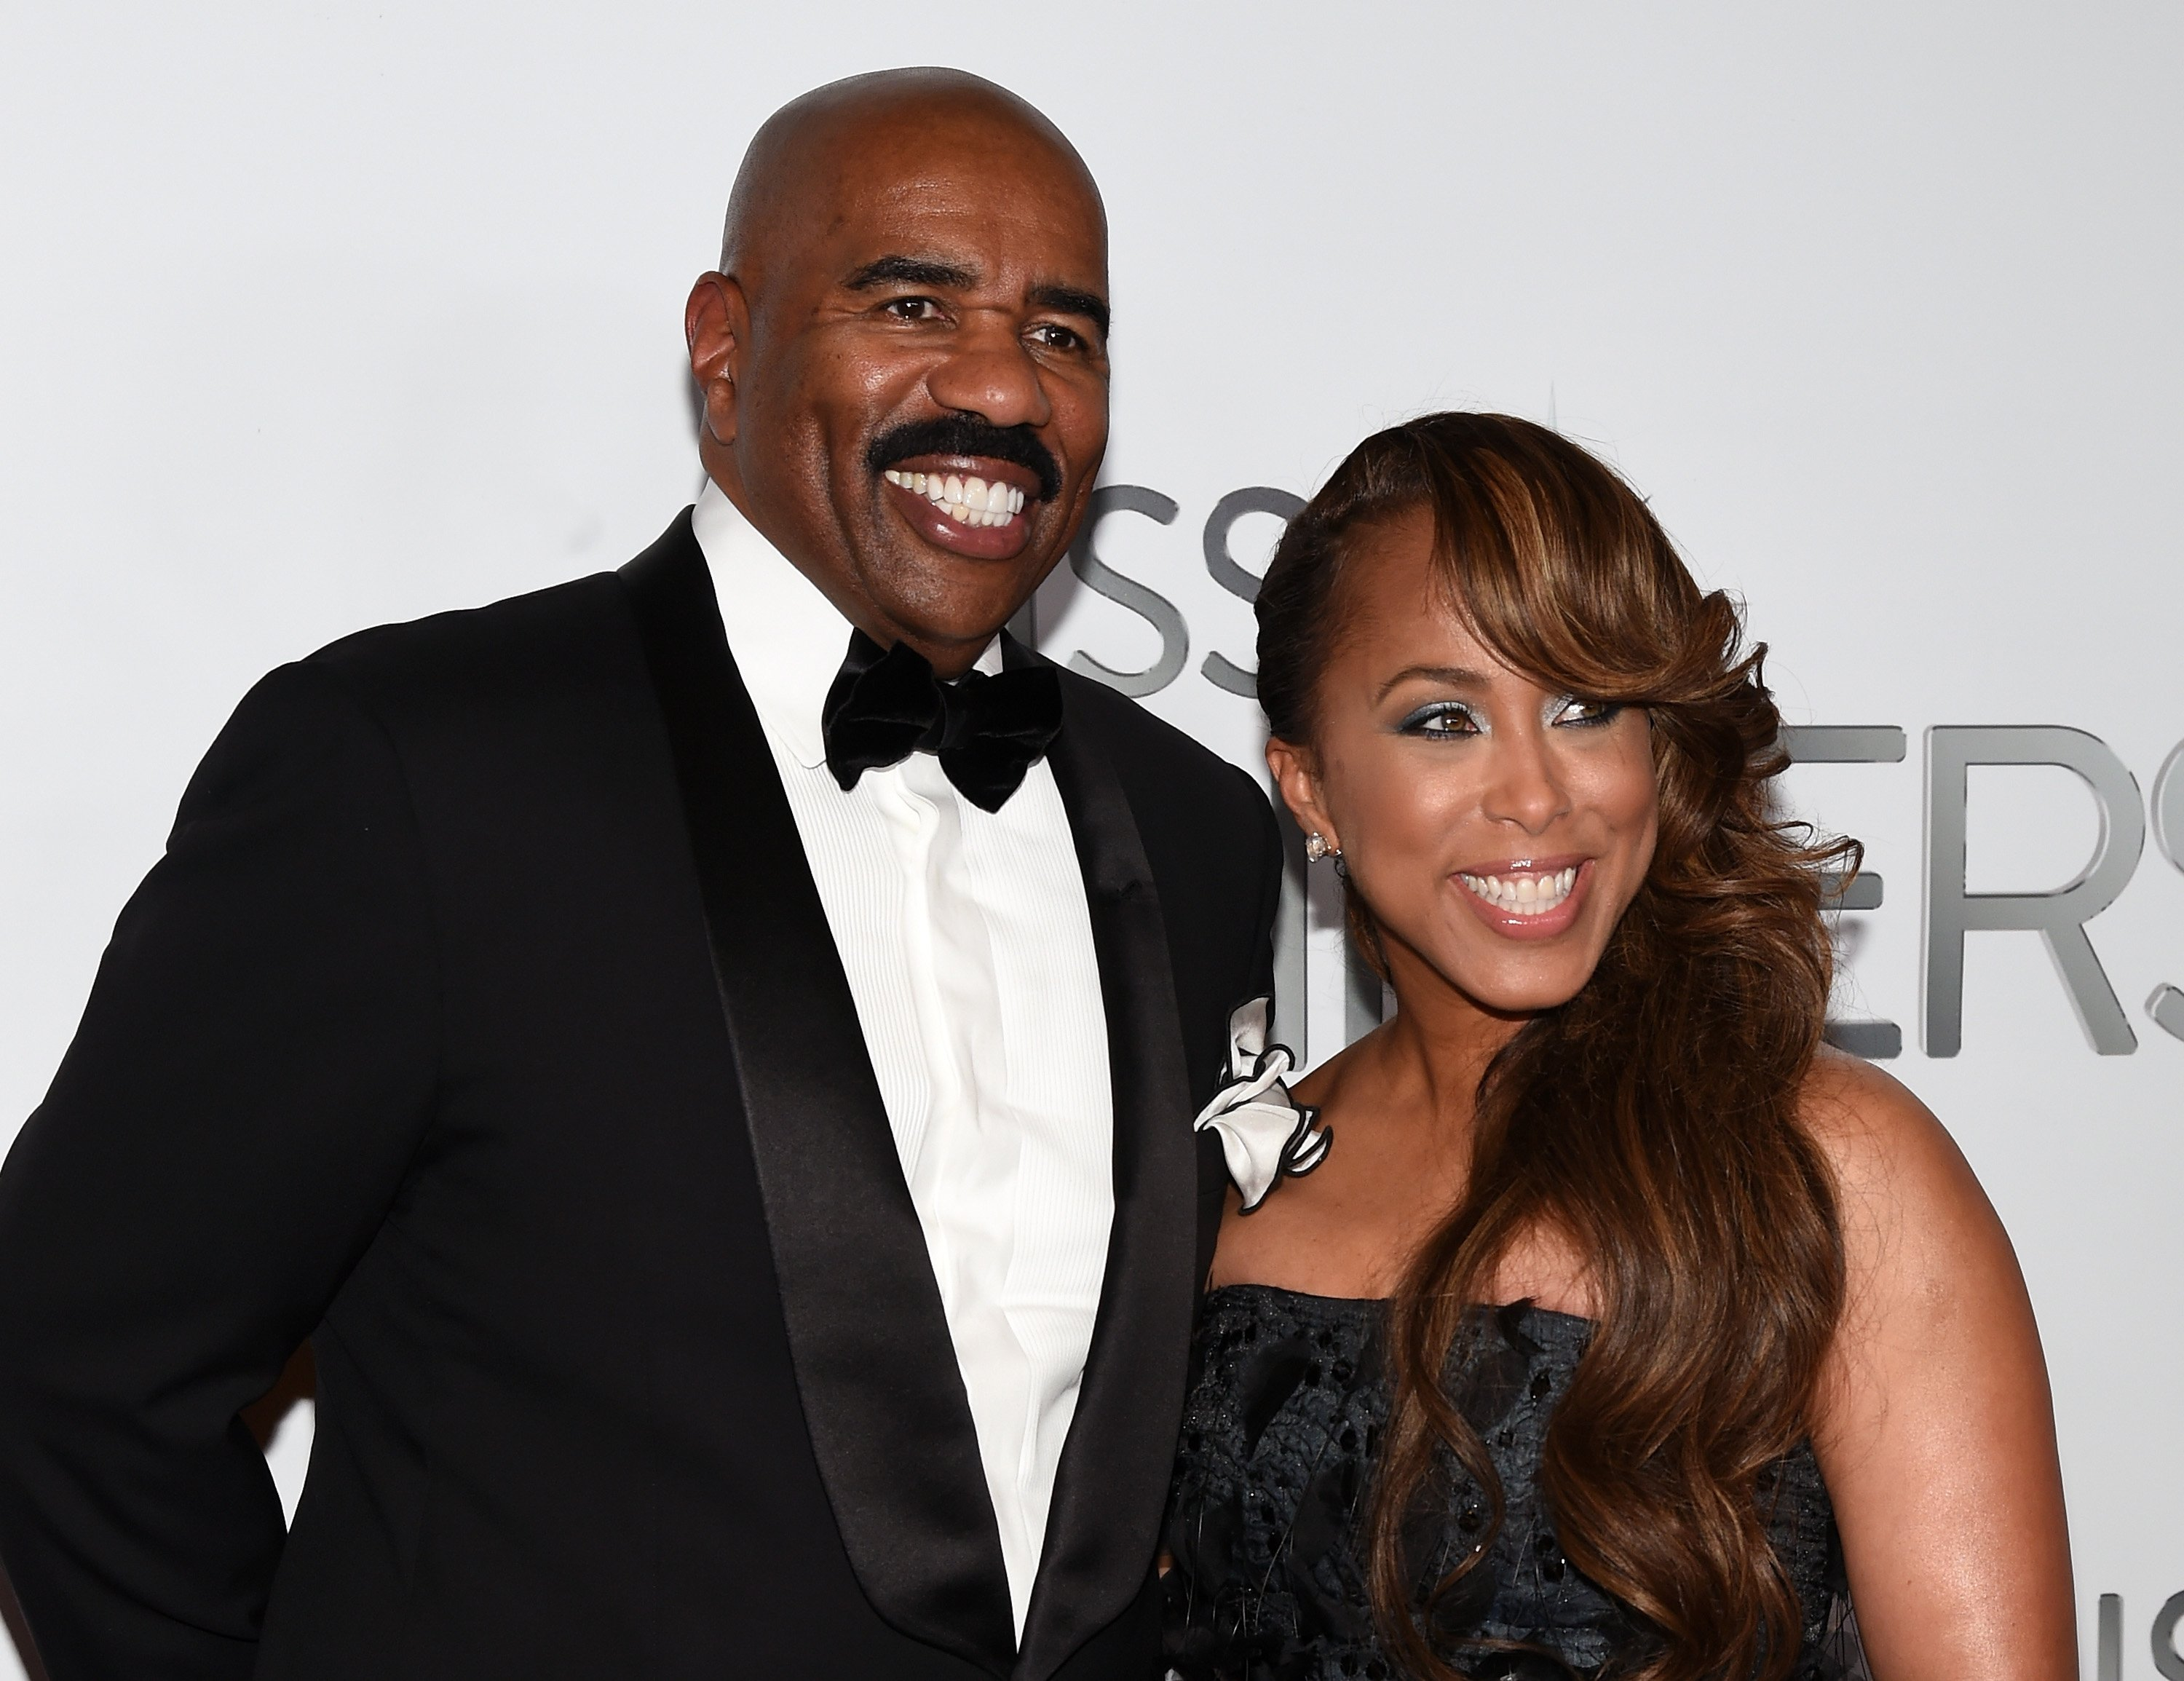 Steve and Marjorie Harvey at the 2015 Miss Universe Pageant on December 20, 2015 in Las Vegas, Nevada. | Source: Getty Images